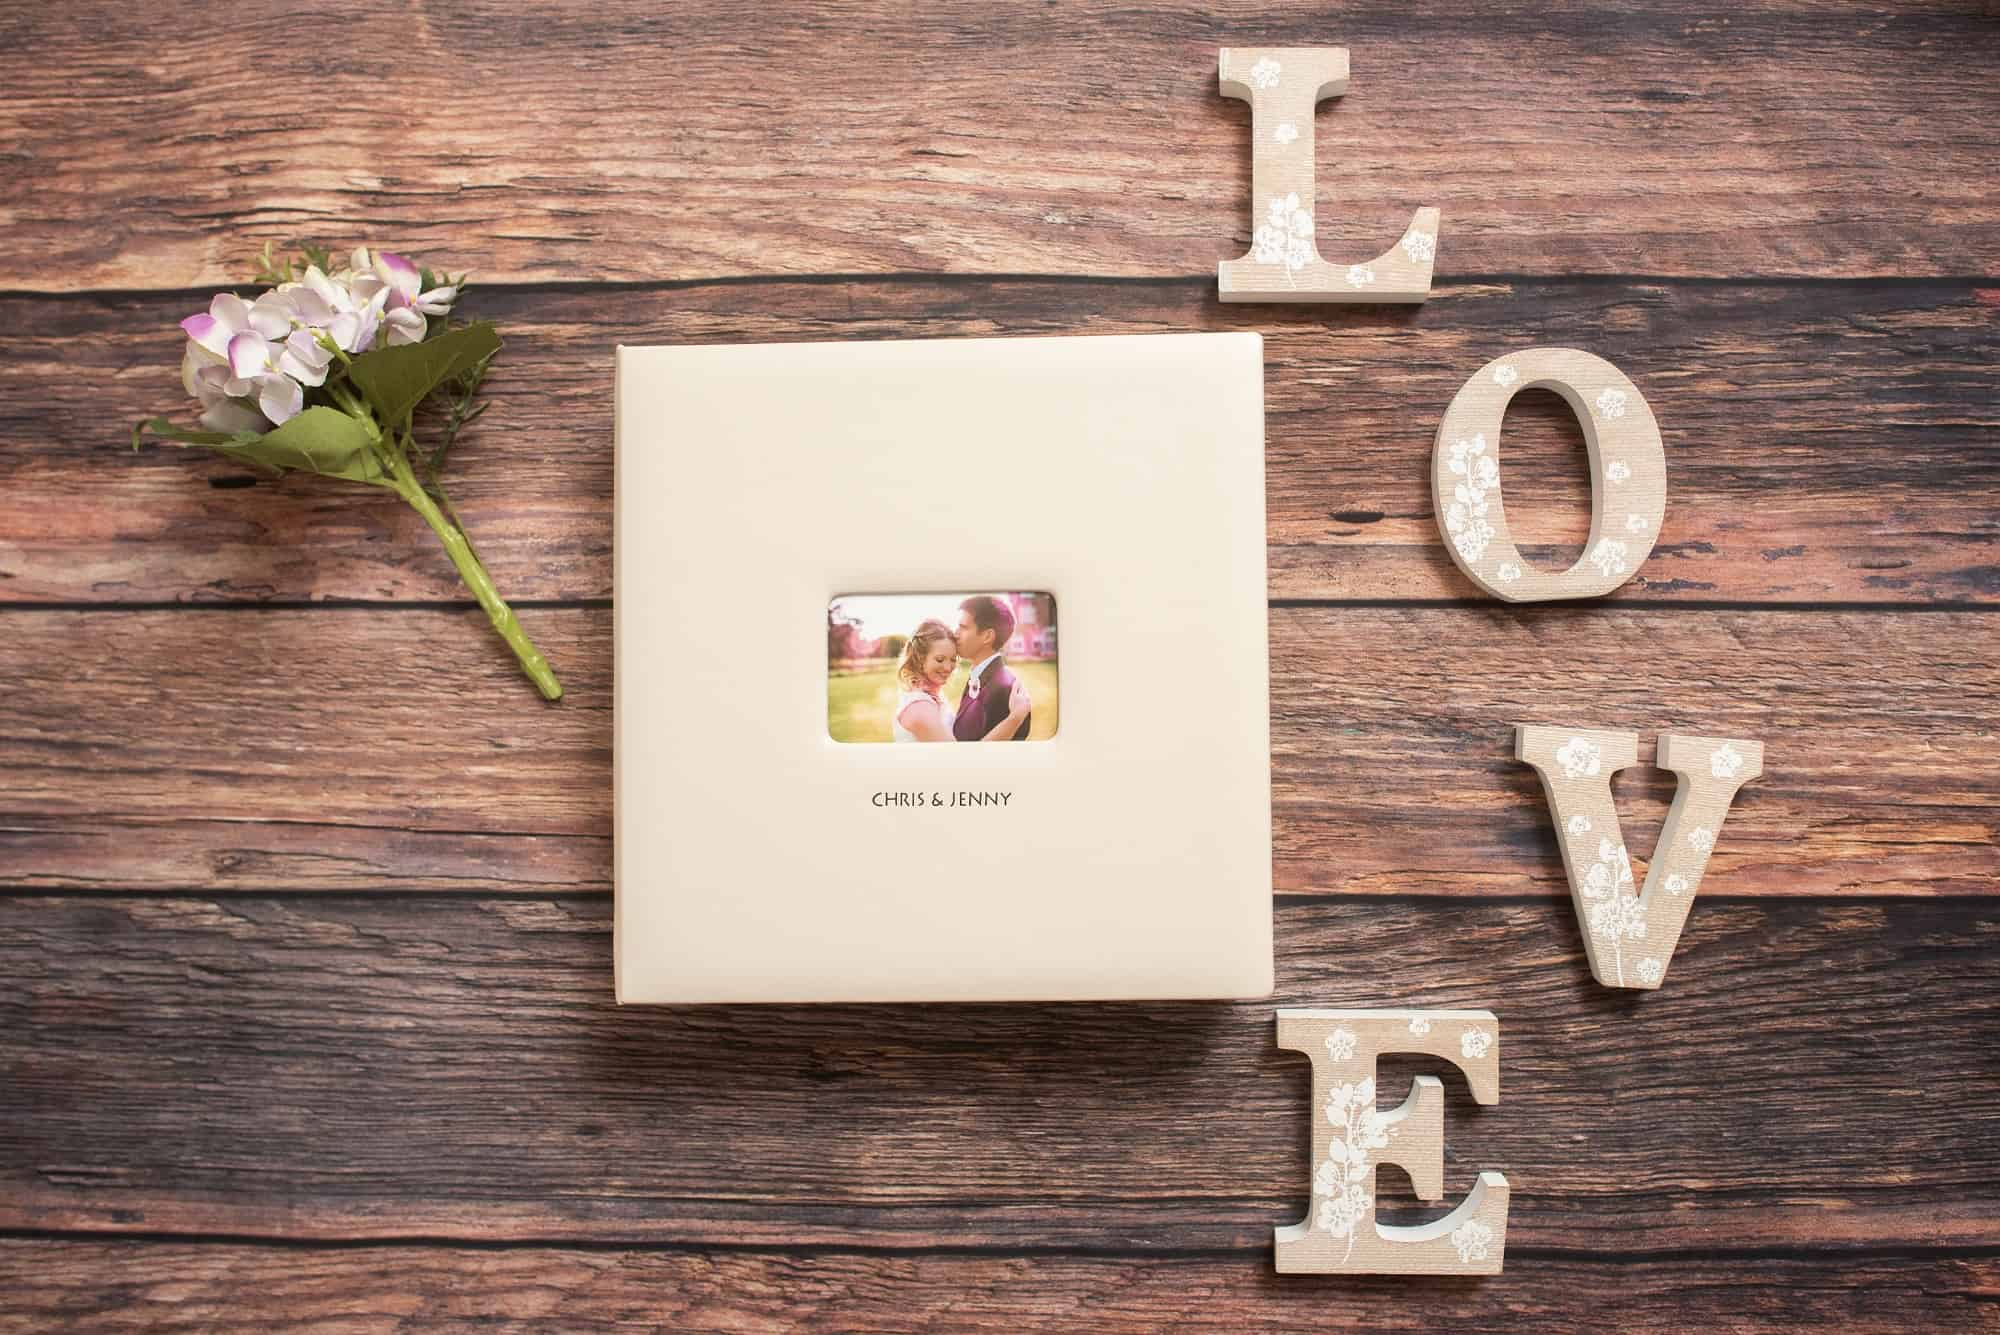 Wedding albums products, bespoke and made to your own design. Great for a gift. Cream faux leather album with matching box